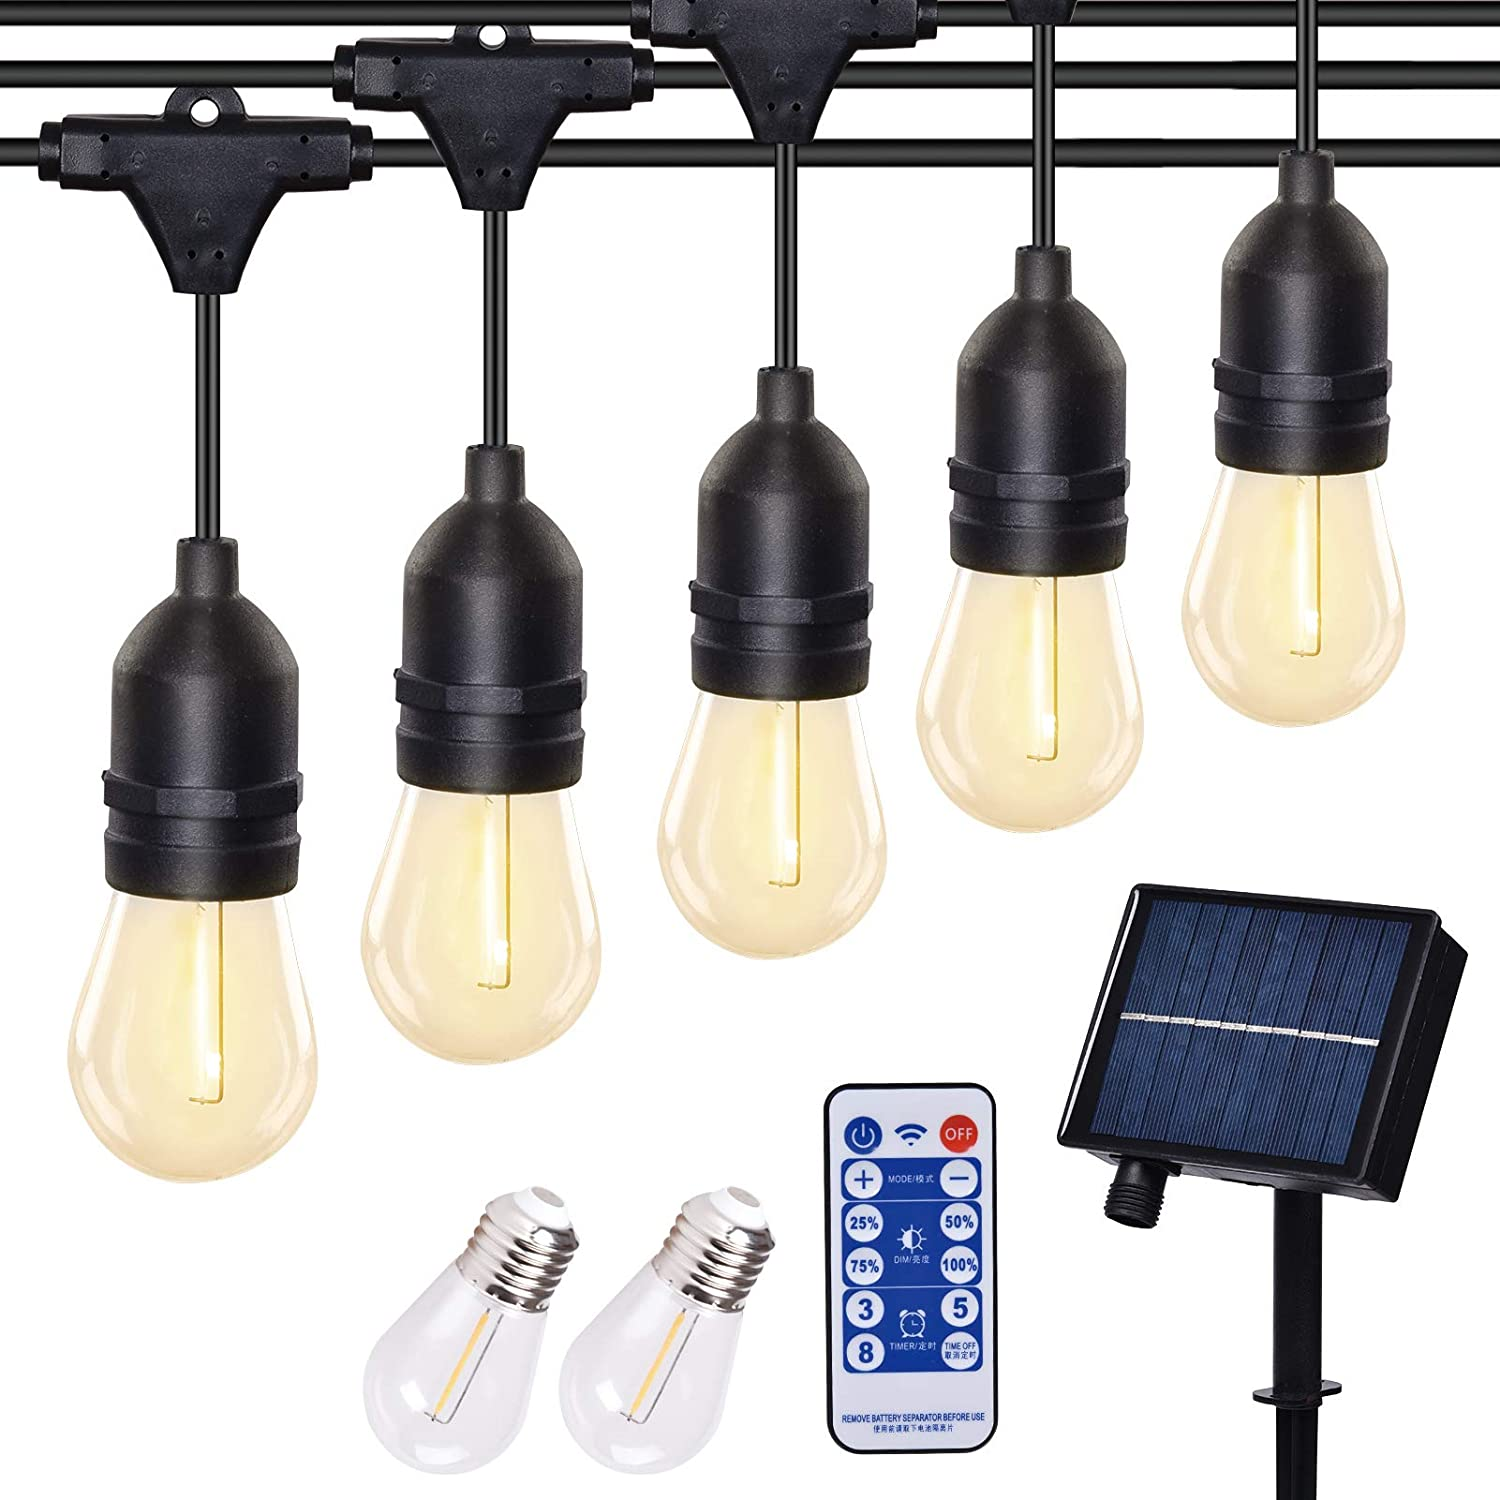 Outdoor String Lights, 23ft Solar String Lights Outdoor with 15+2 Edison Bulbs Patio Lights Outdoor Waterproof Decorative Lights for Backyard Garden Party Balcony Wedding and Cafe